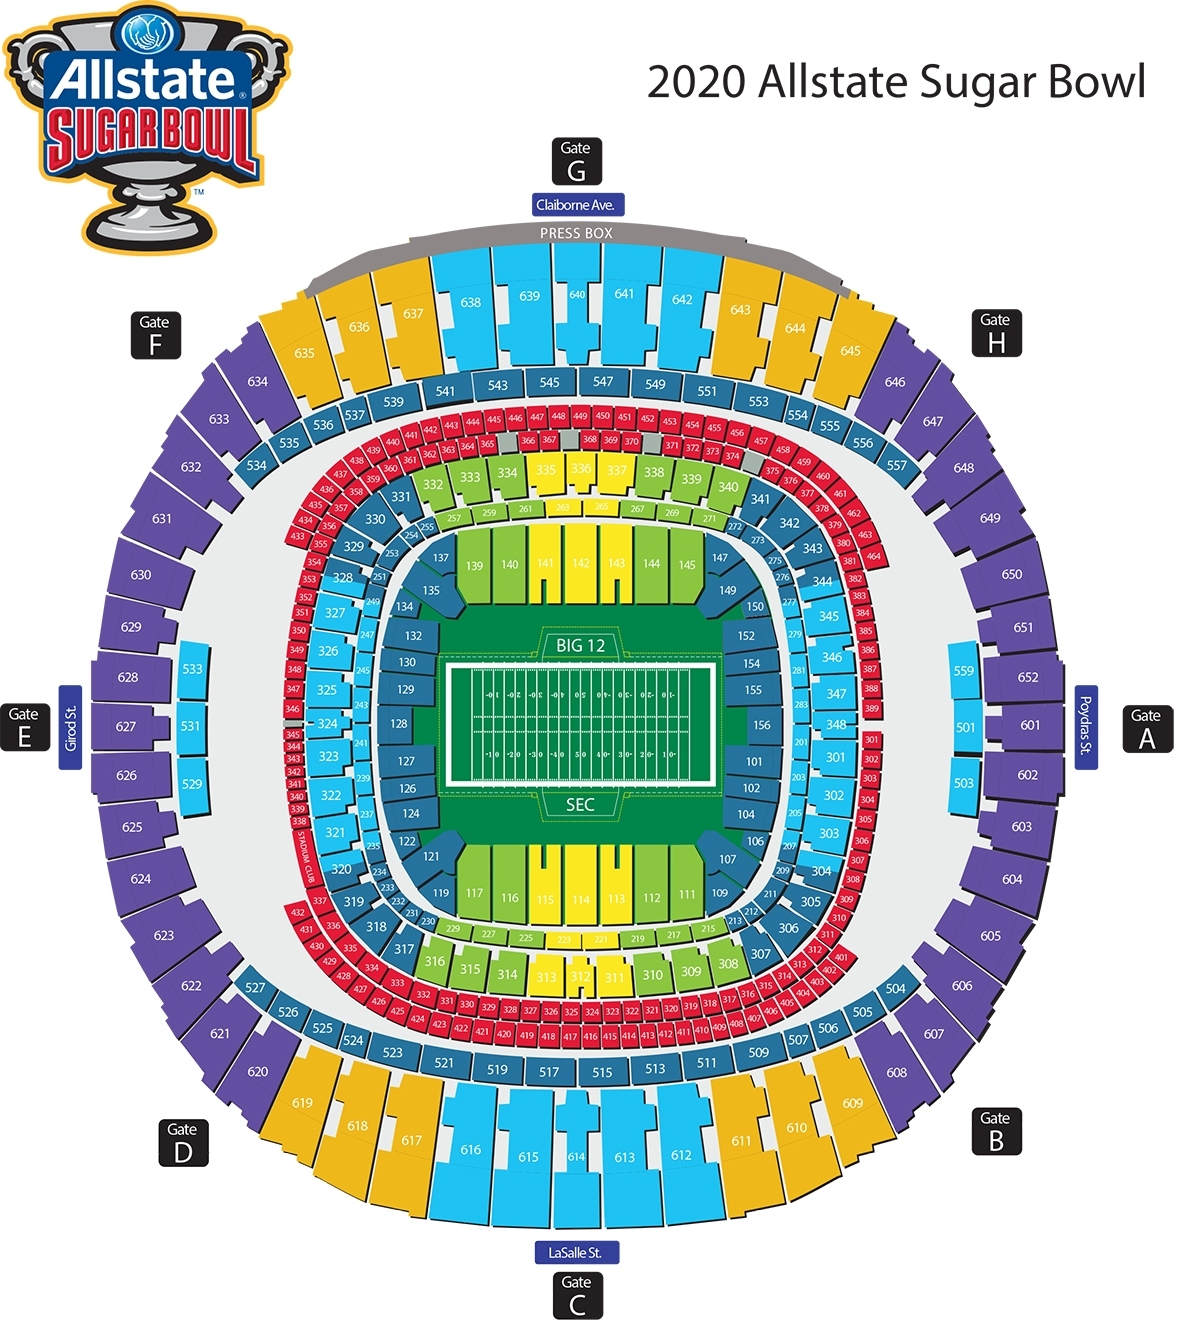 Seating Diagram - Official Site Of The Allstate Sugar Bowl throughout Super Bowl 53 Seating Chart